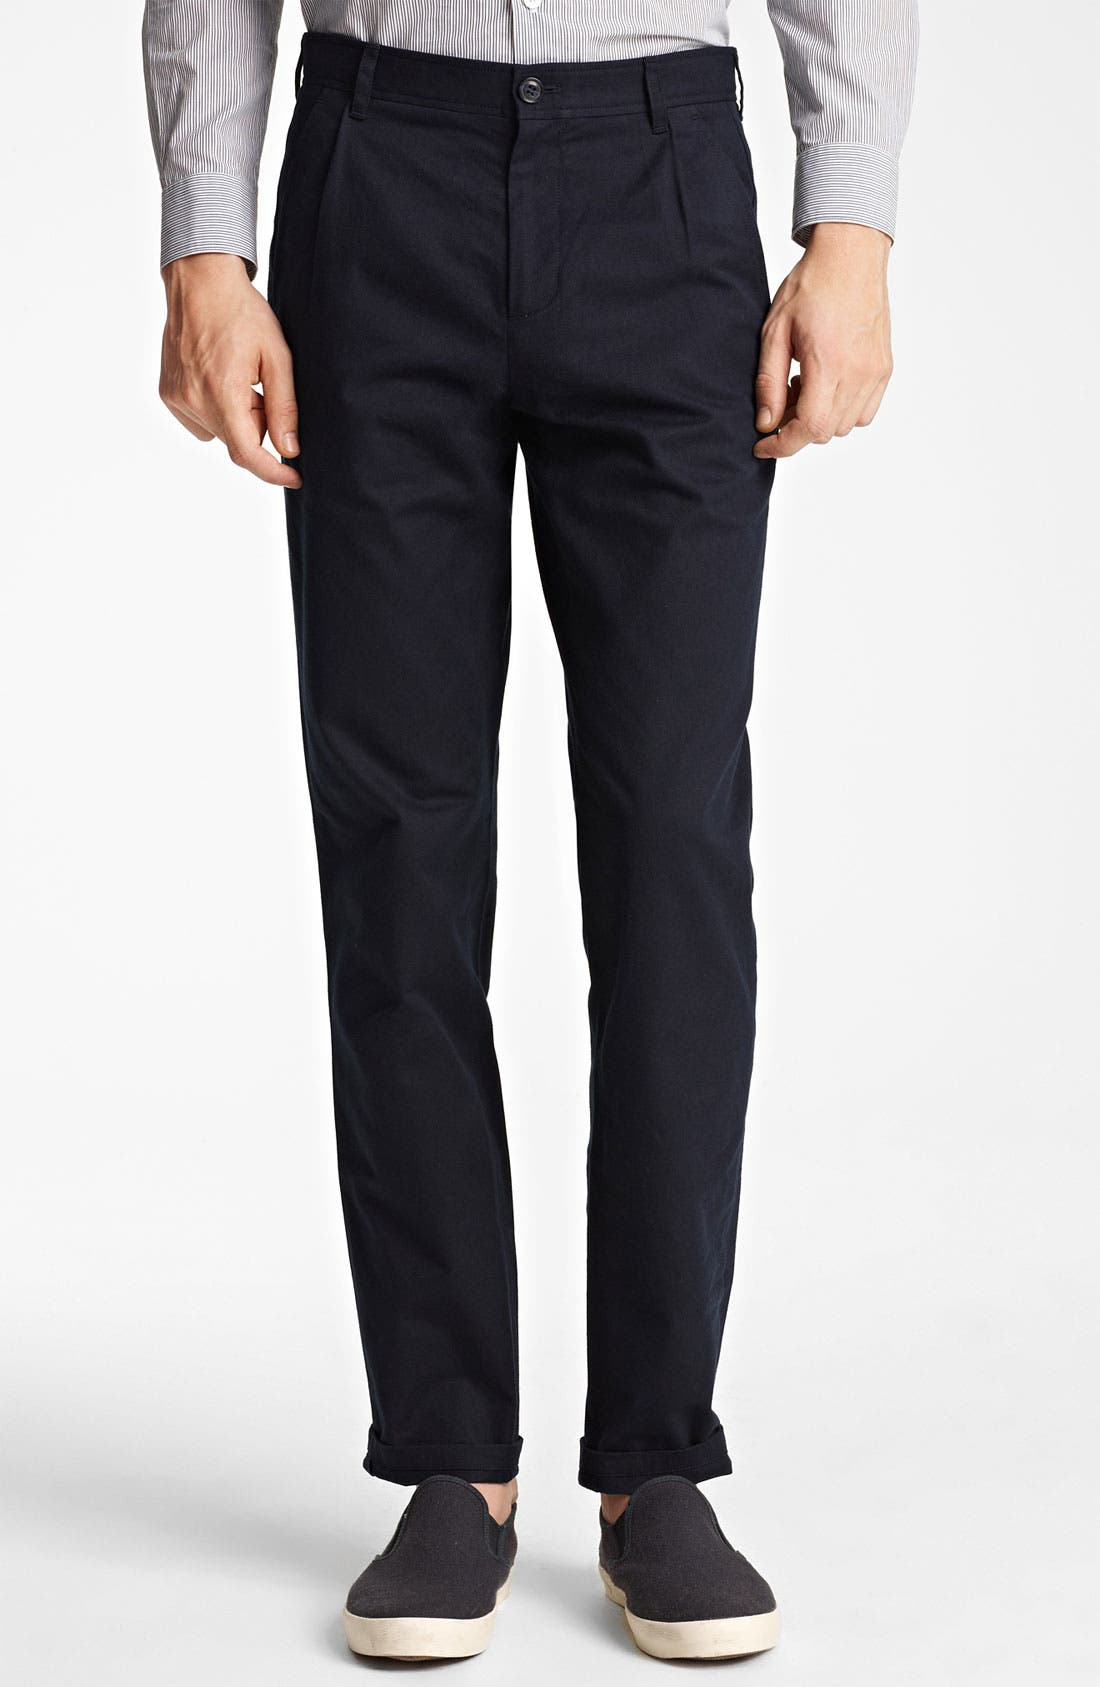 Alternate Image 1 Selected - A.P.C. Straight Leg Cotton Pants